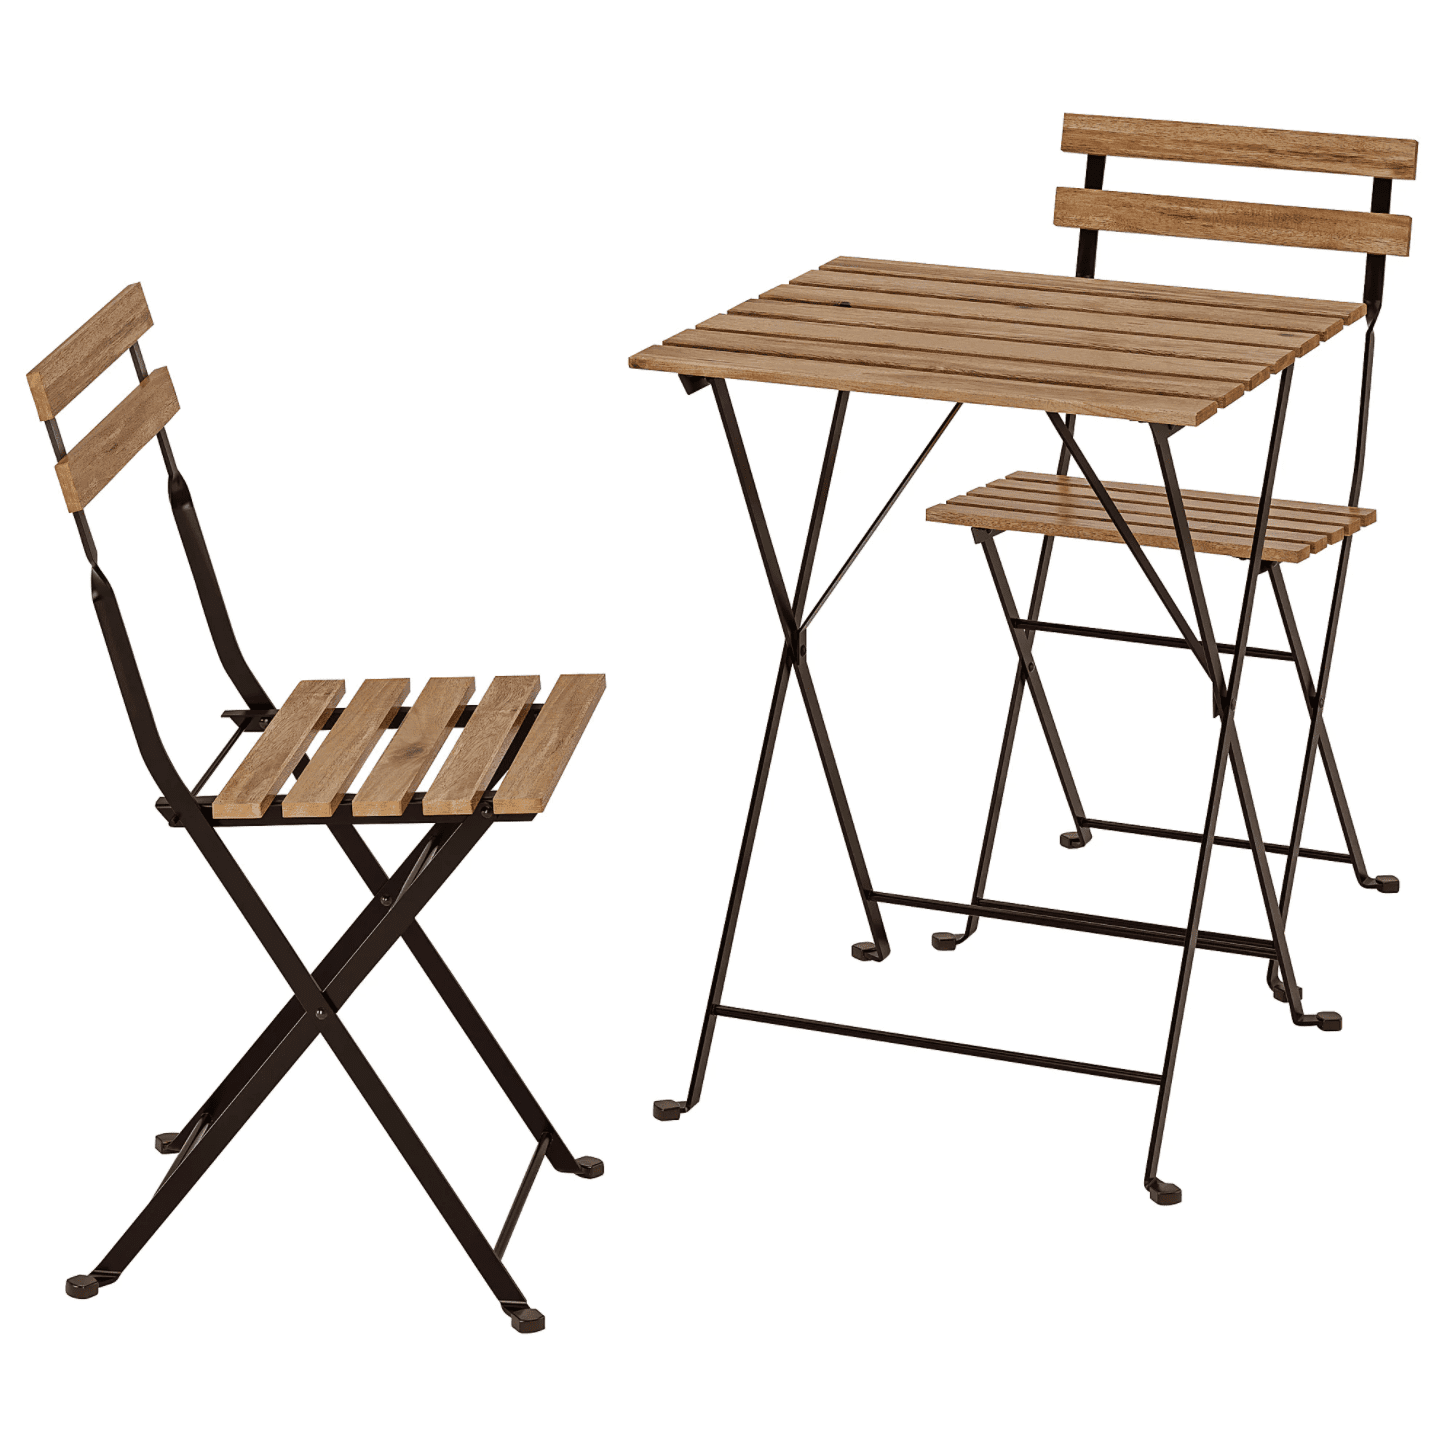 A 3-piece bistro table and chairs set, currently for sale at IKEA